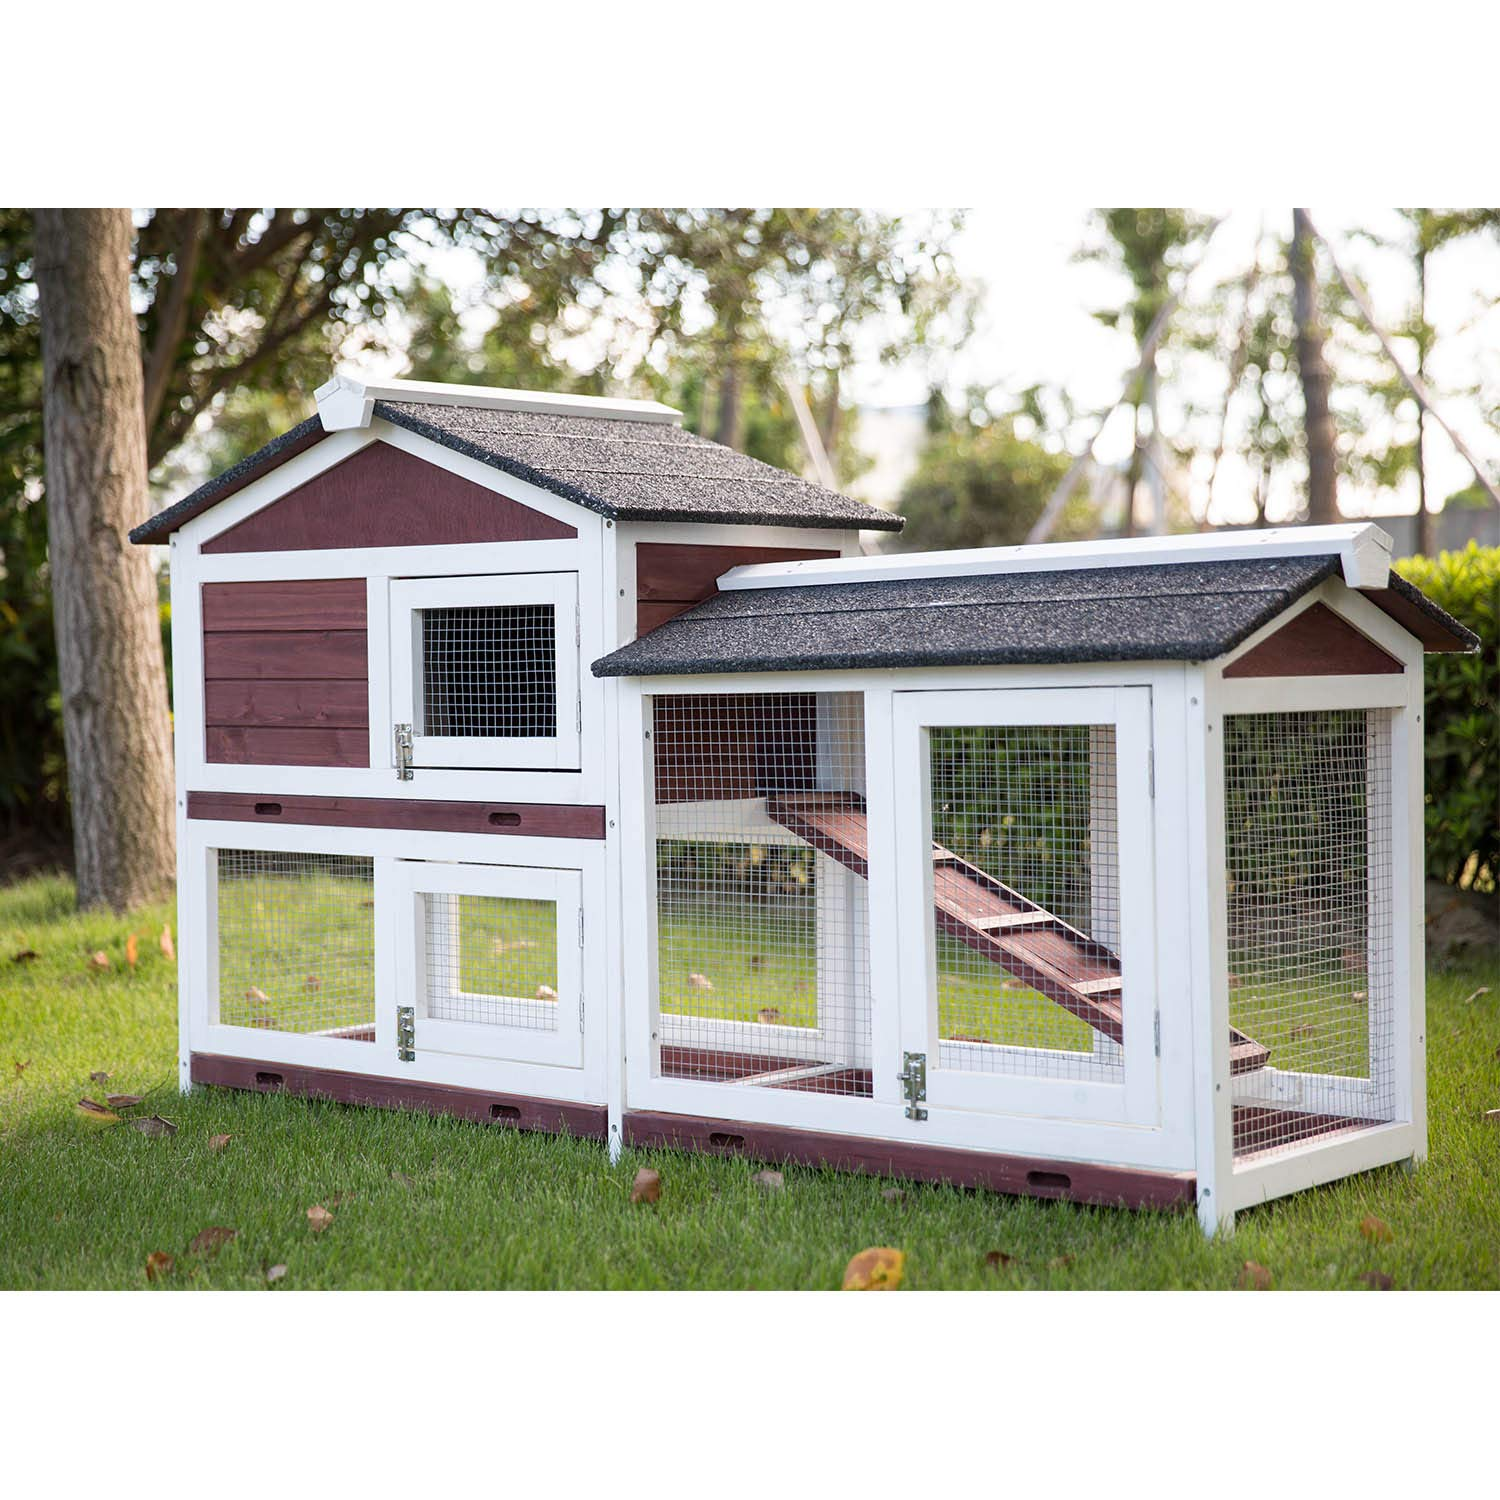 Kinbor Outdoor 60'' Wooden Bunny Hutch Hen Duck Coop Large House Removable Tray & Ramp & Run Area by Kinbor